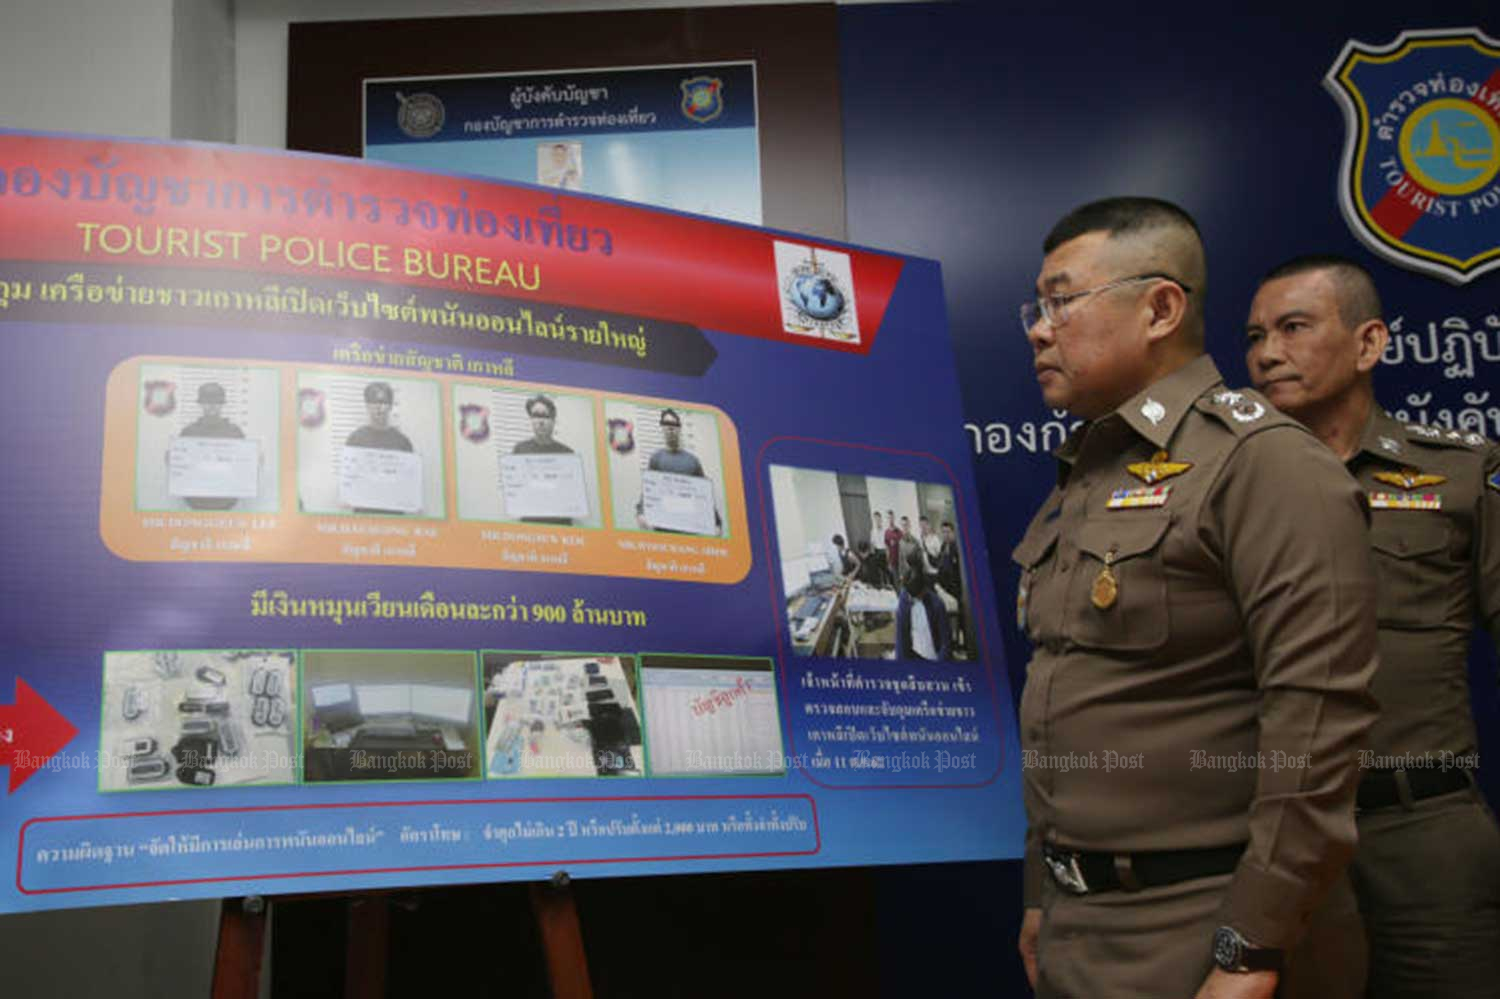 Pol Lt Gen Damrongsak Kittiprapas, assistant national police chief, front, and Pol Lt Gen Chettha Komolwattana, commissioner of the Tourist Police Bureau, discuss the arrest of four South Koreans in connection with an online gambling website during a media briefing on Saturday. (Photo by Apichit Jinakul)